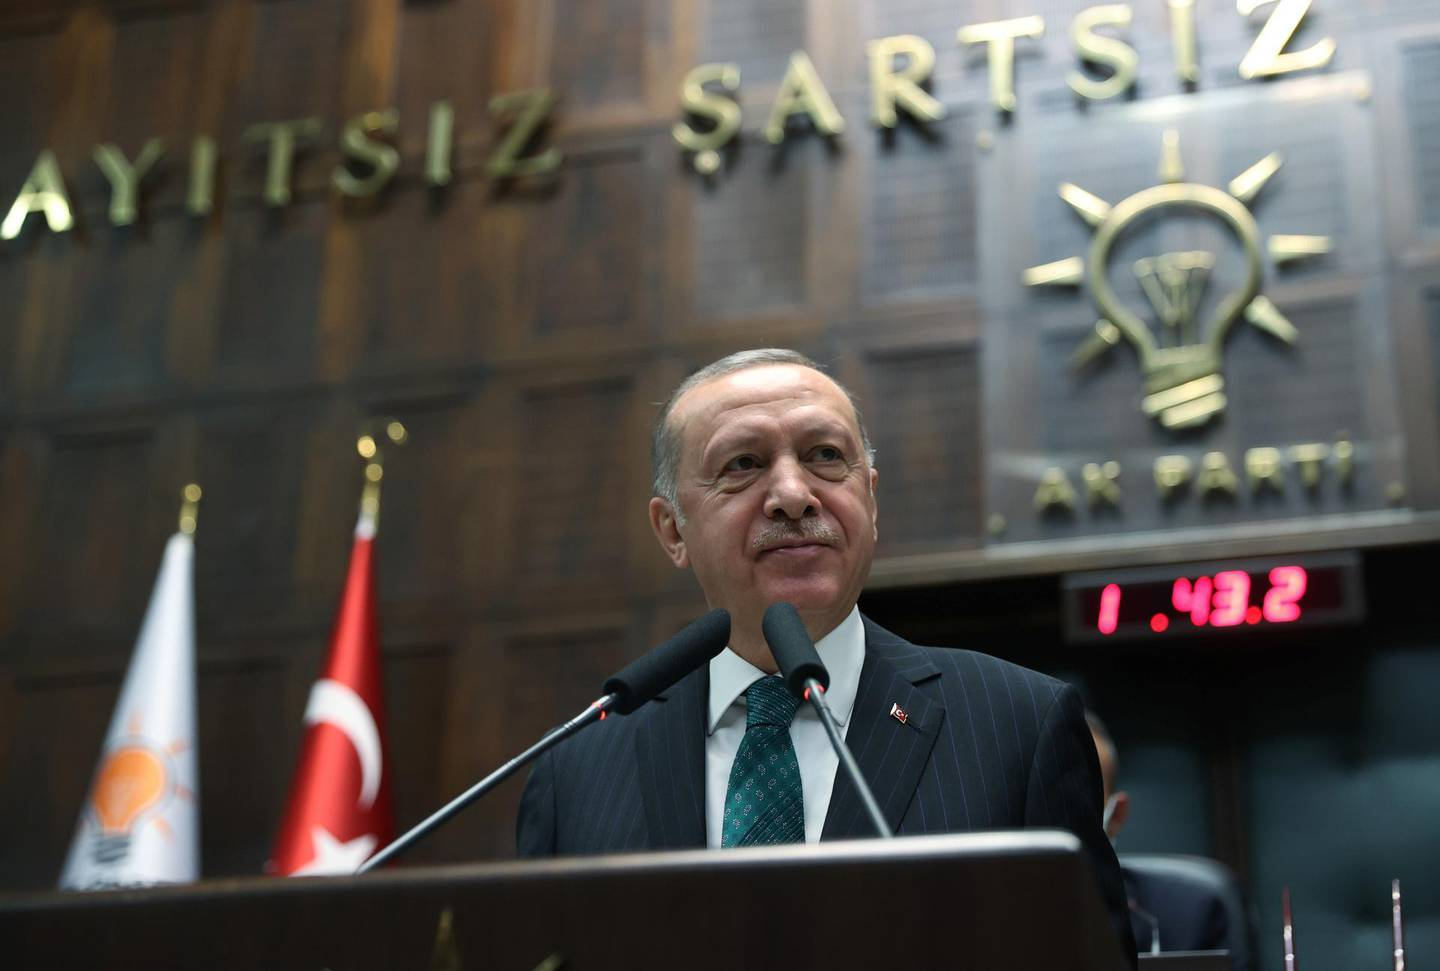 Turkish President Tayyip Erdogan addresses members of parliament from his ruling AK Party (AKP) during a meeting at the Turkish parliament in Ankara, Turkey, February 10, 2021. Murat Cetinmuhurdar/PPO/Handout via REUTERS THIS IMAGE HAS BEEN SUPPLIED BY A THIRD PARTY. NO RESALES. NO ARCHIVES